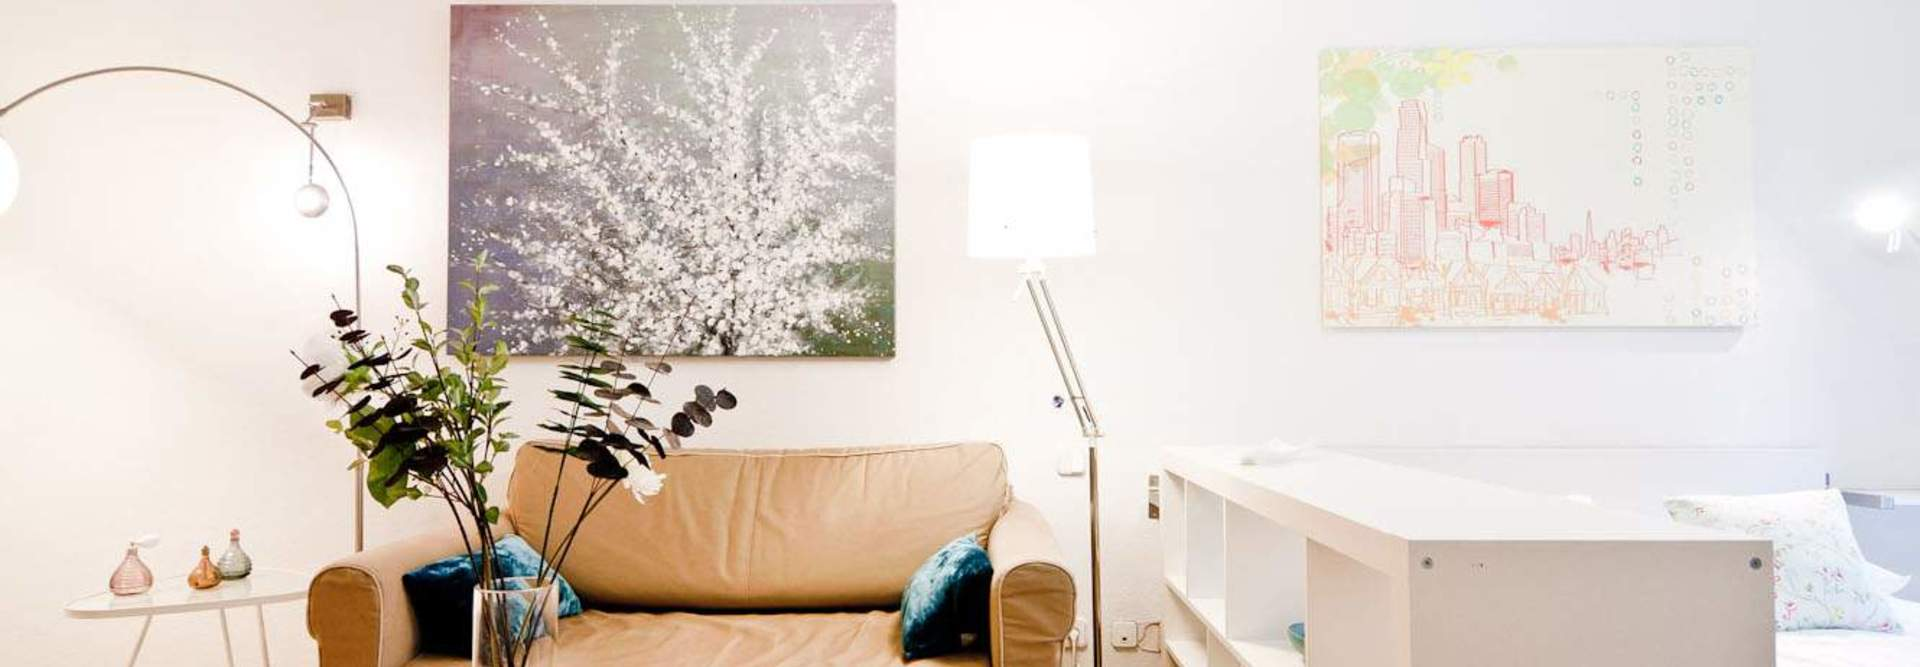 Home alquiler apartamento madrid centro mad4rent  23